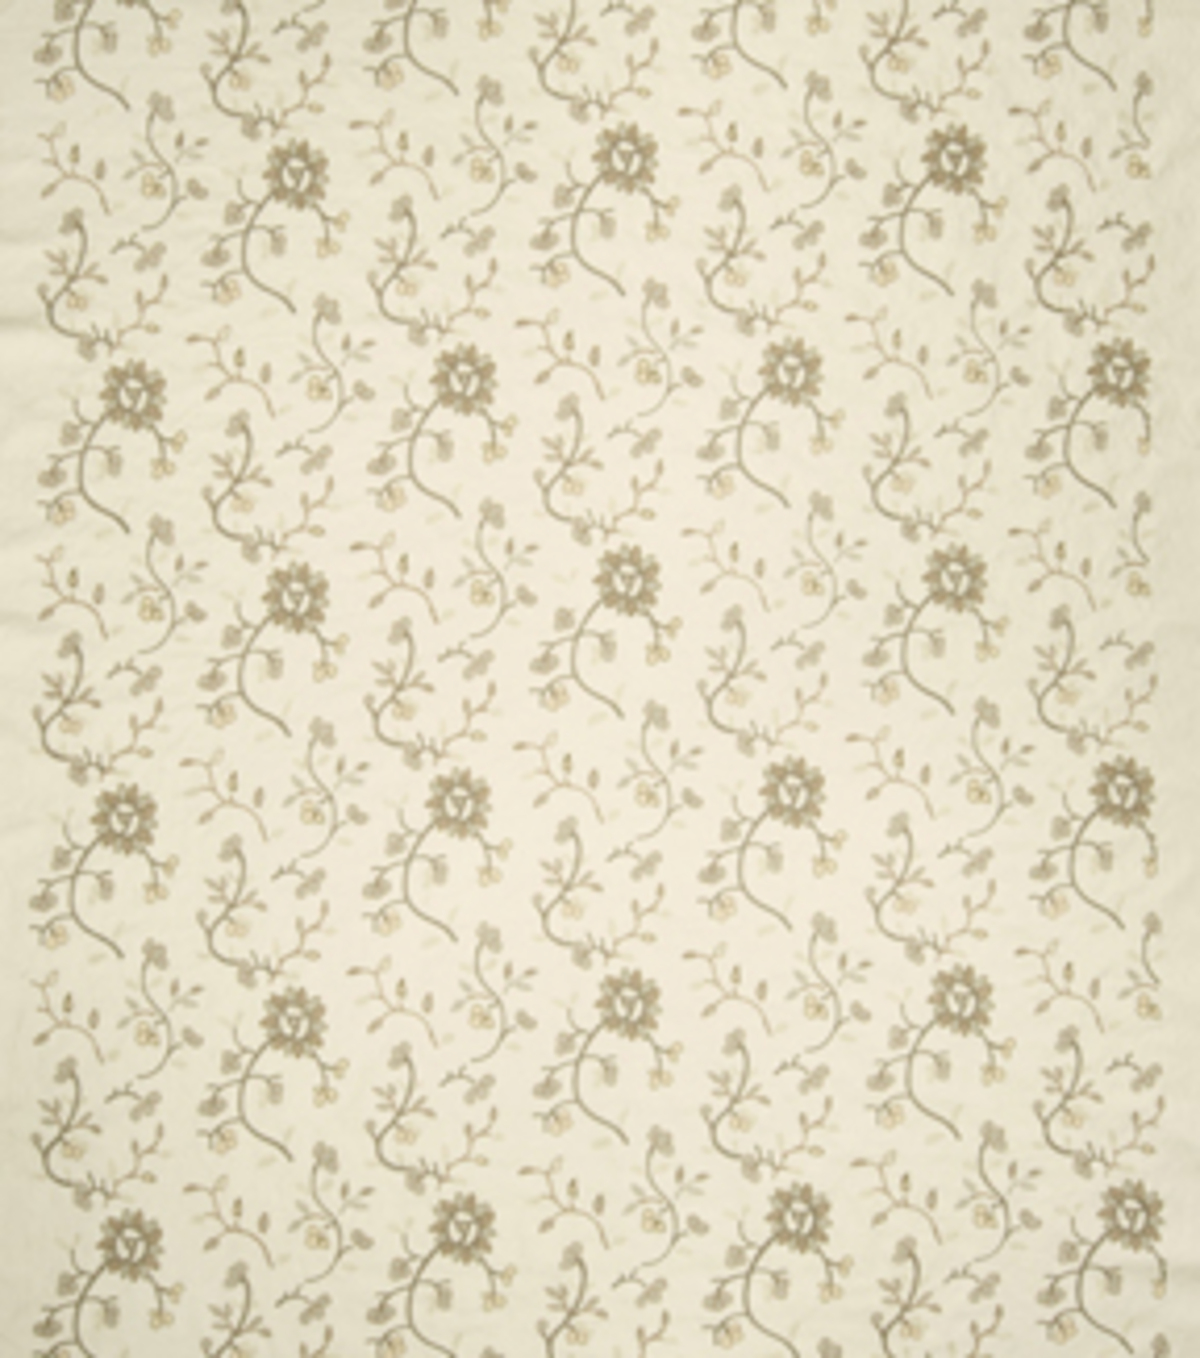 Home Decor 8\u0022x8\u0022 Fabric Swatch-French General Caspian Bisque